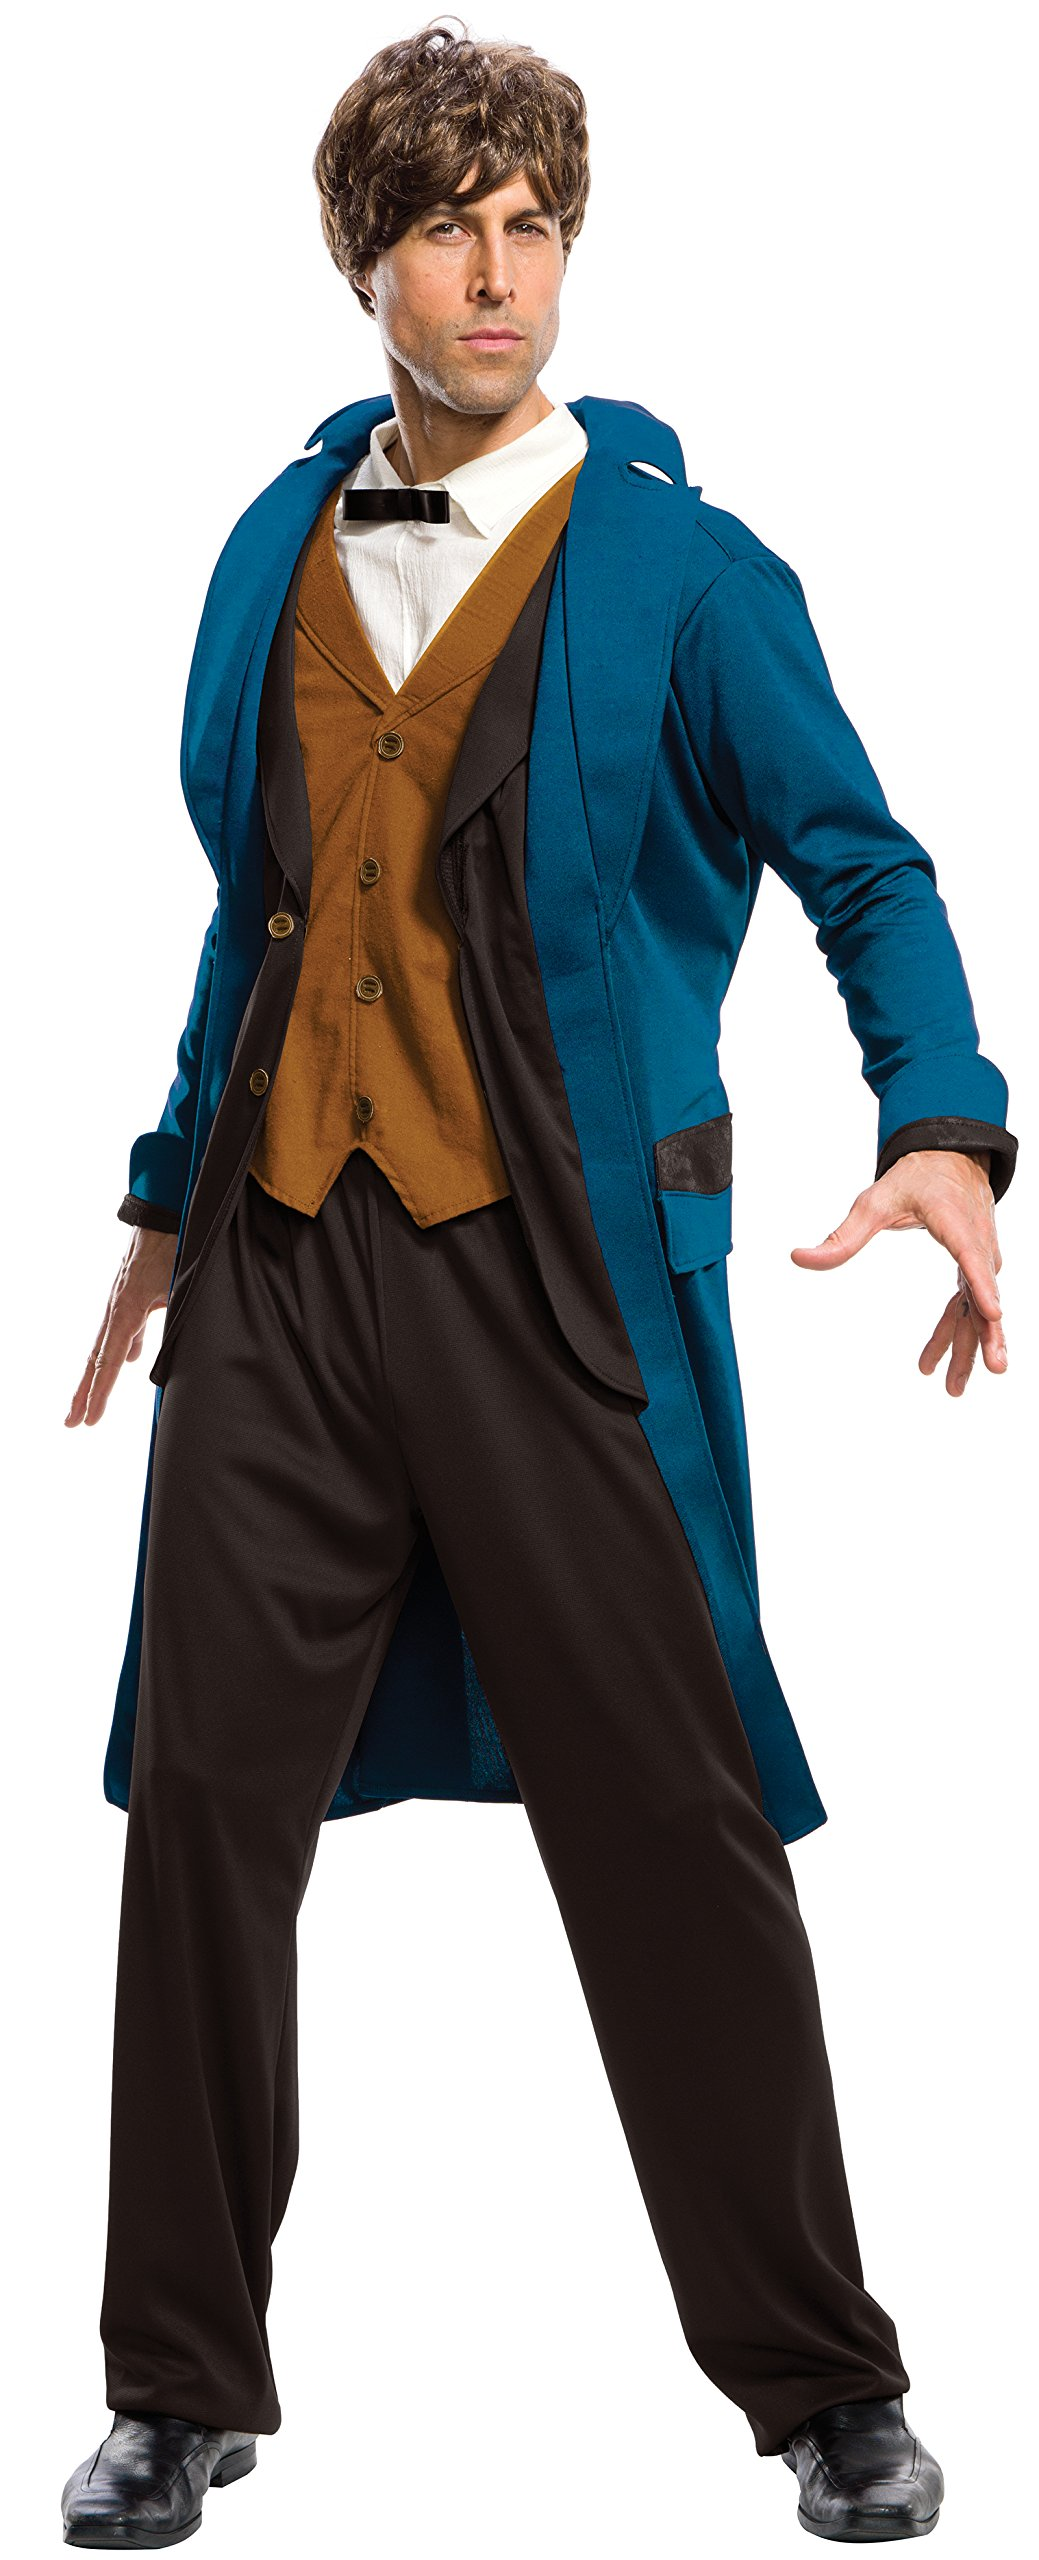 Rubie's Costume Co. Men's Fantastic Beasts Where to Find Them Deluxe Newt Scamander